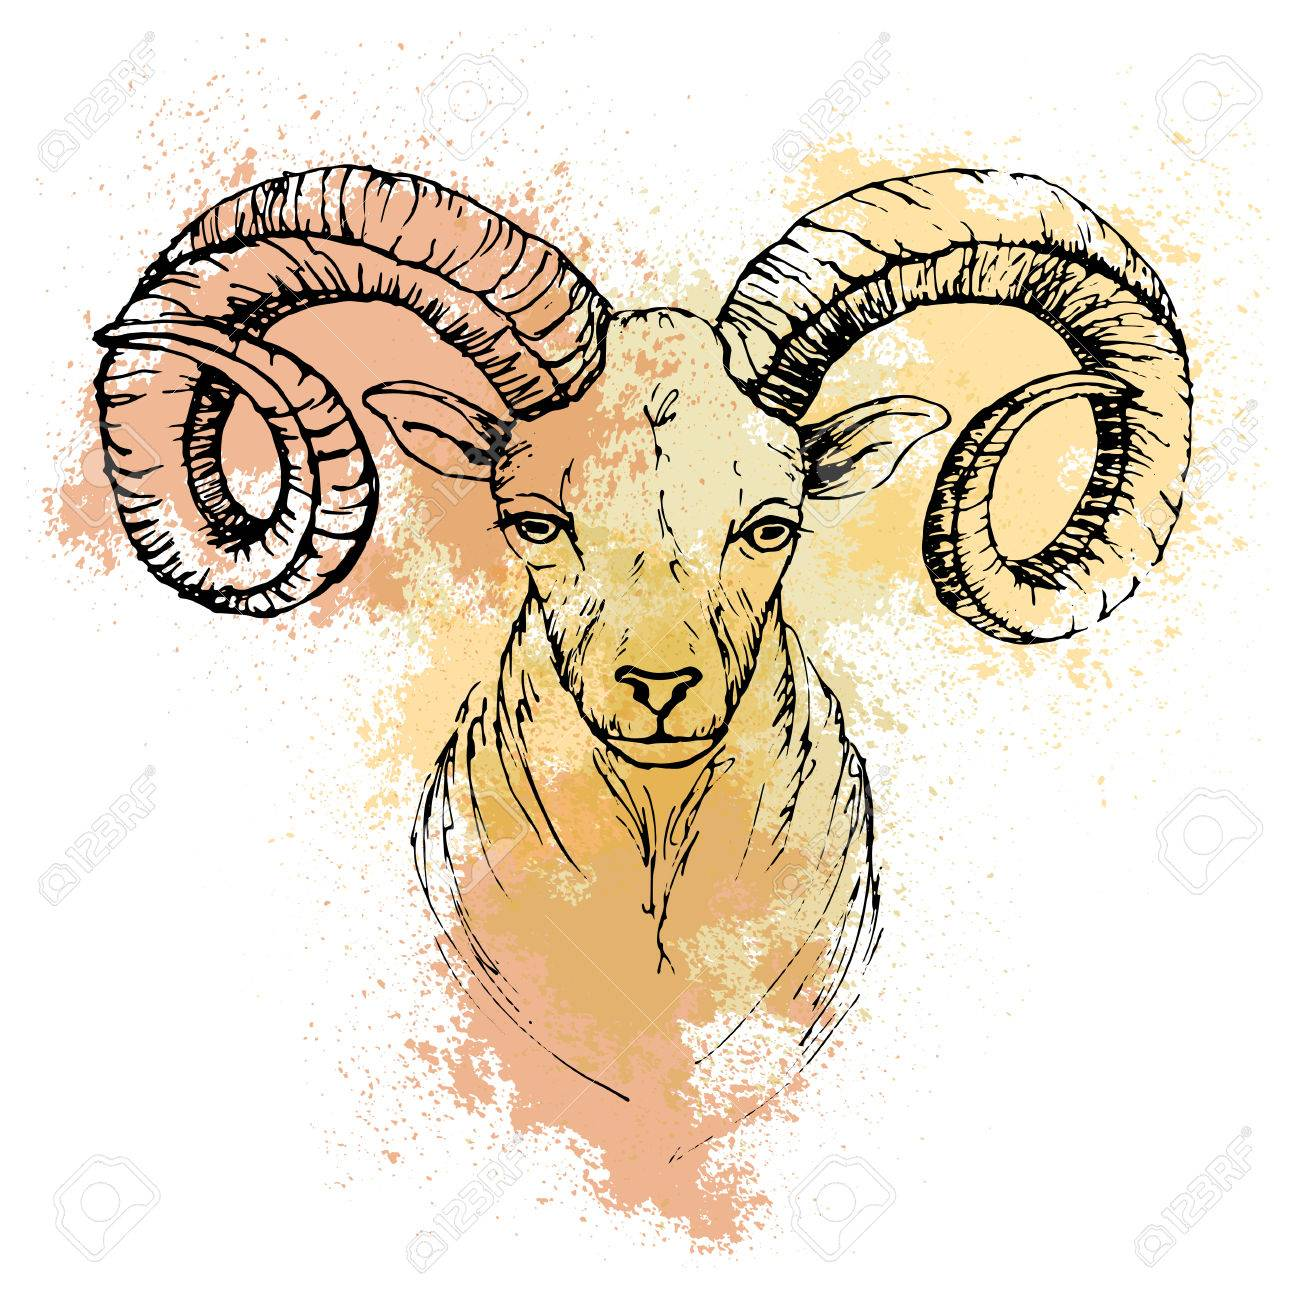 Sketch By Pen Of A Mountain Goat Head On Background Colored Watercolor Stains Stock